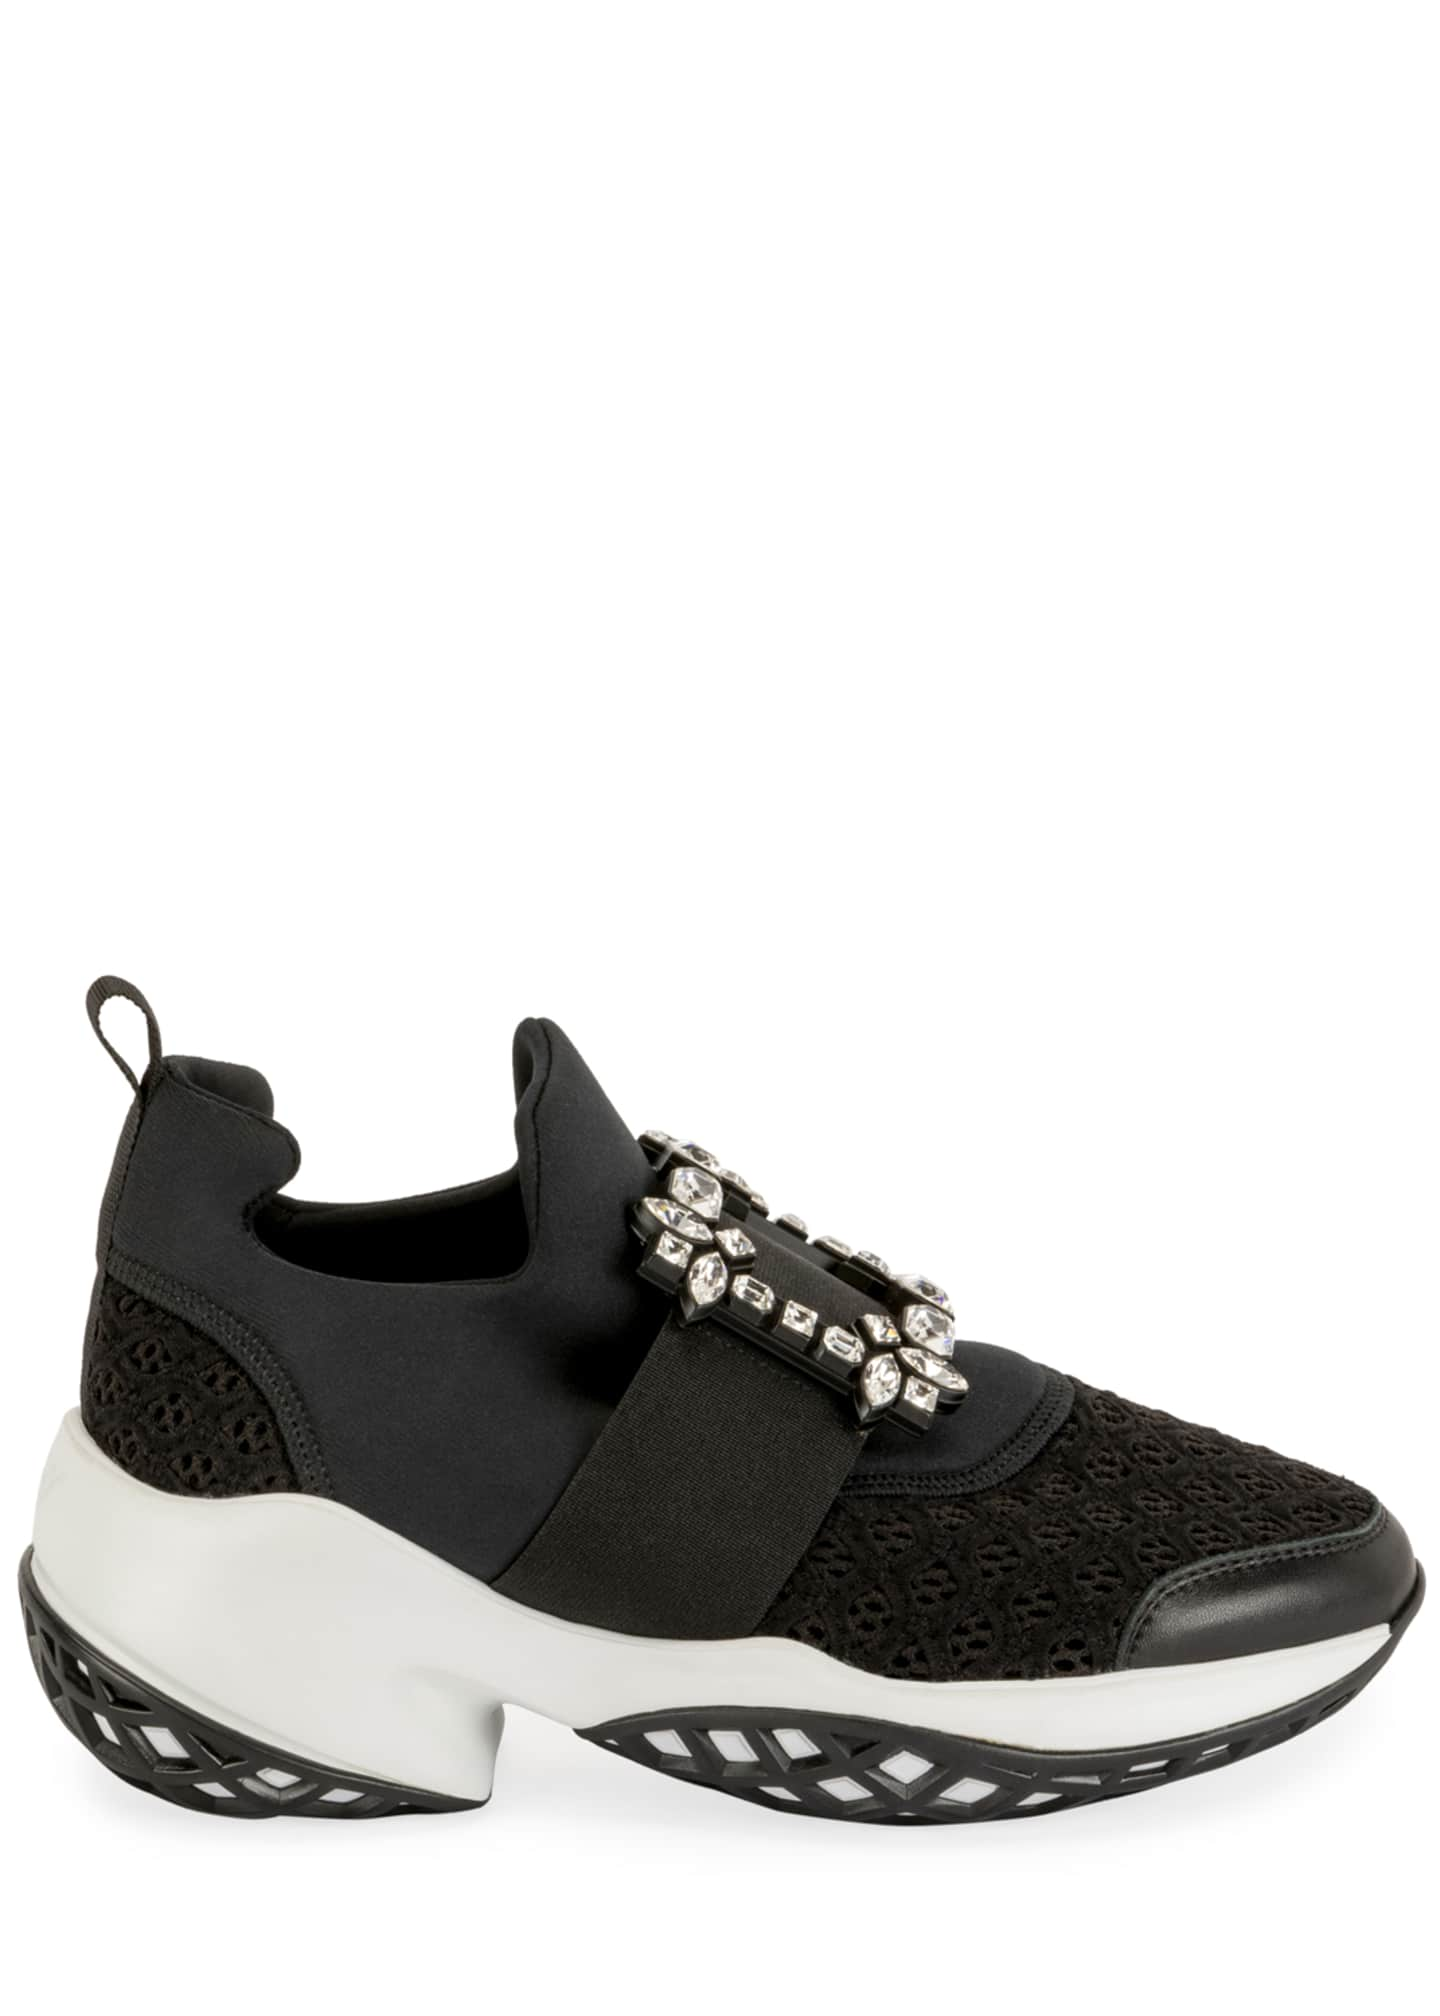 Image 2 of 4: Viv' Run Stretch Crystal Buckle Sneakers